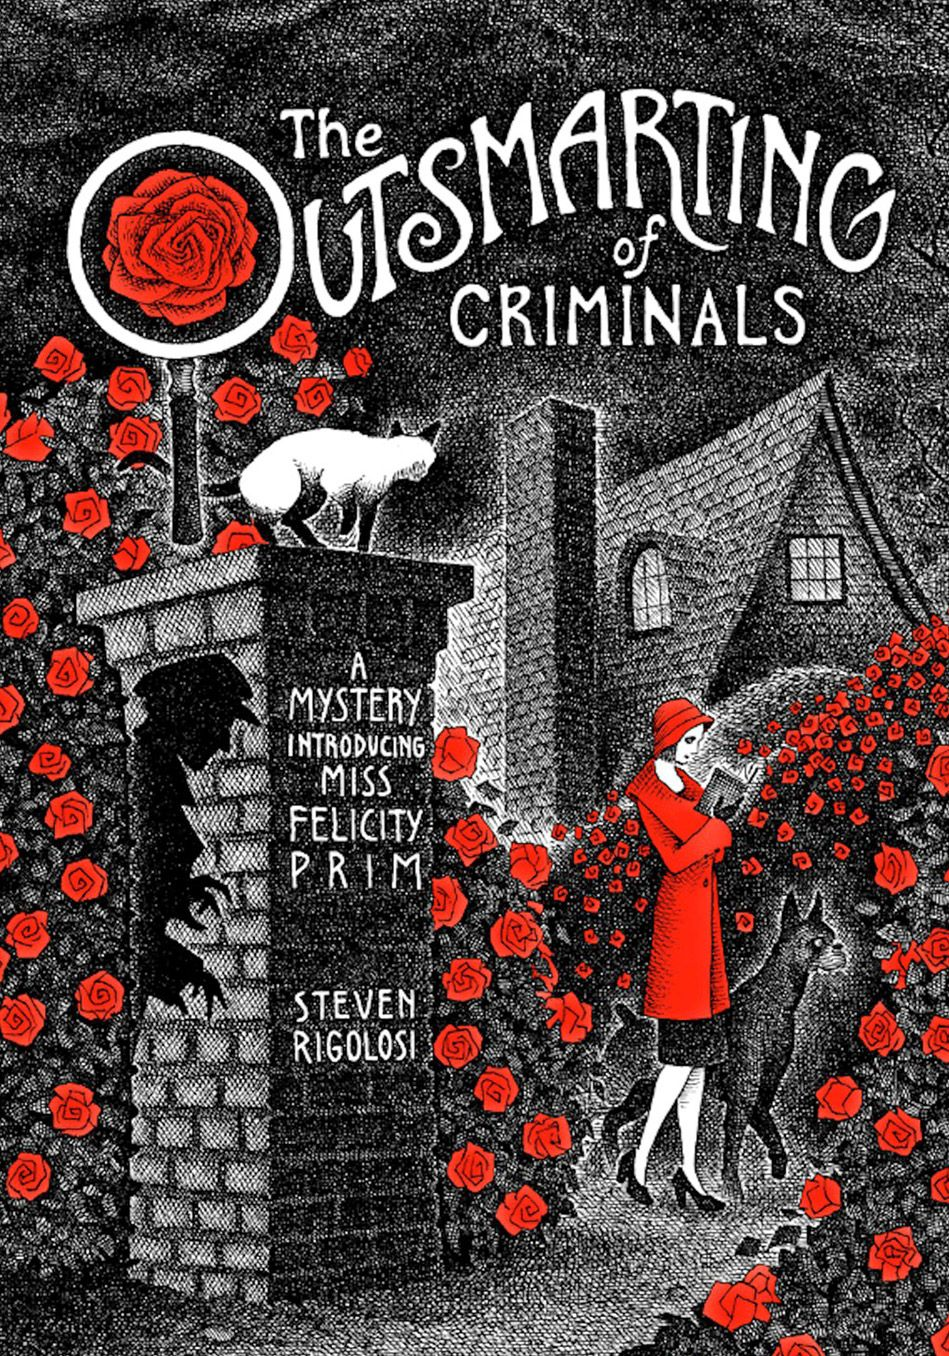 The Outsmarting of Criminals: A Mystery Introducin